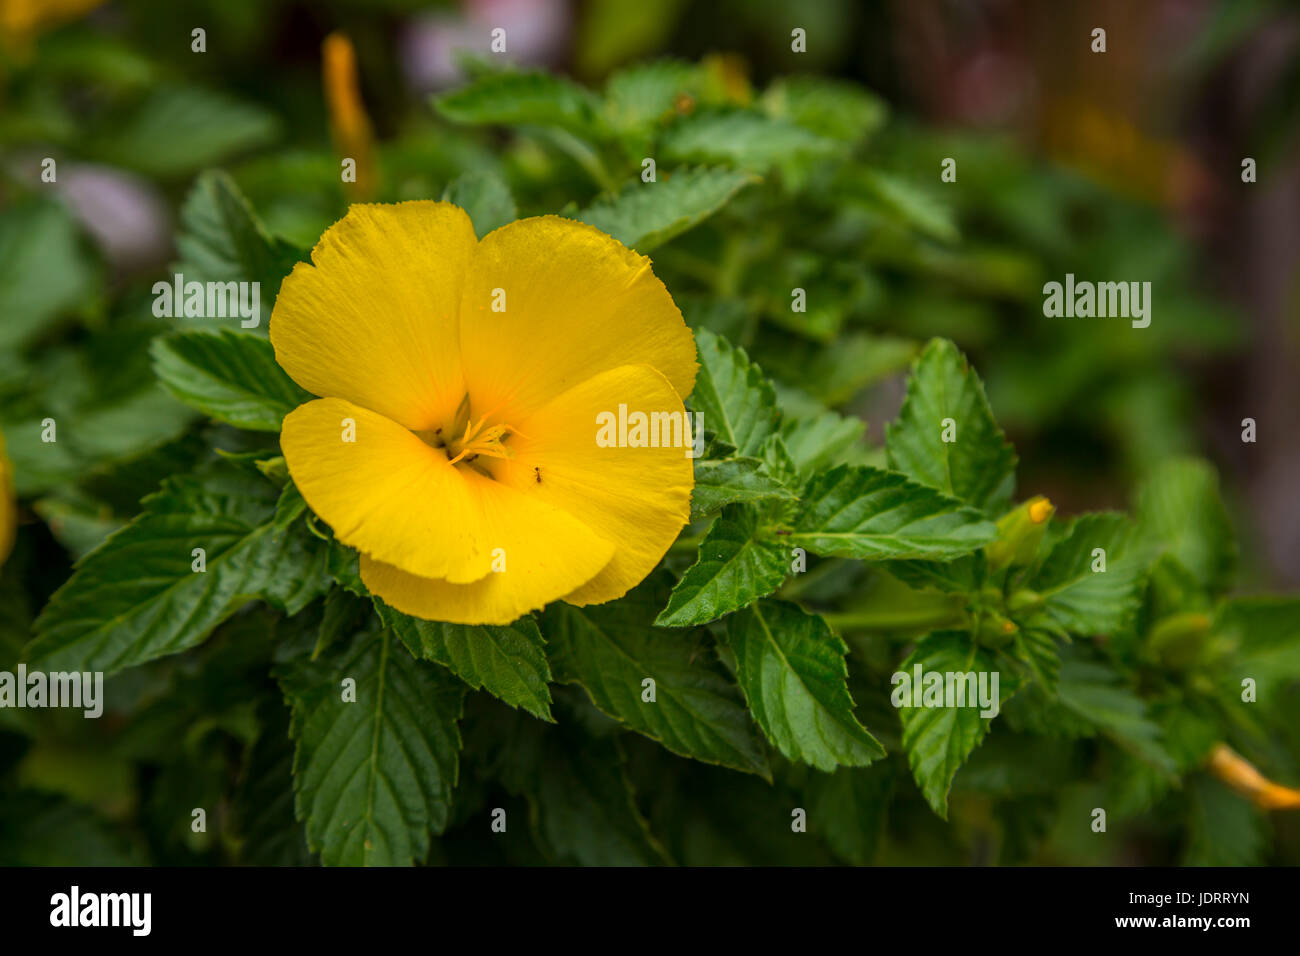 Flowers in the Pottery Village of Naha, Okinawa, Japan. - Stock Image